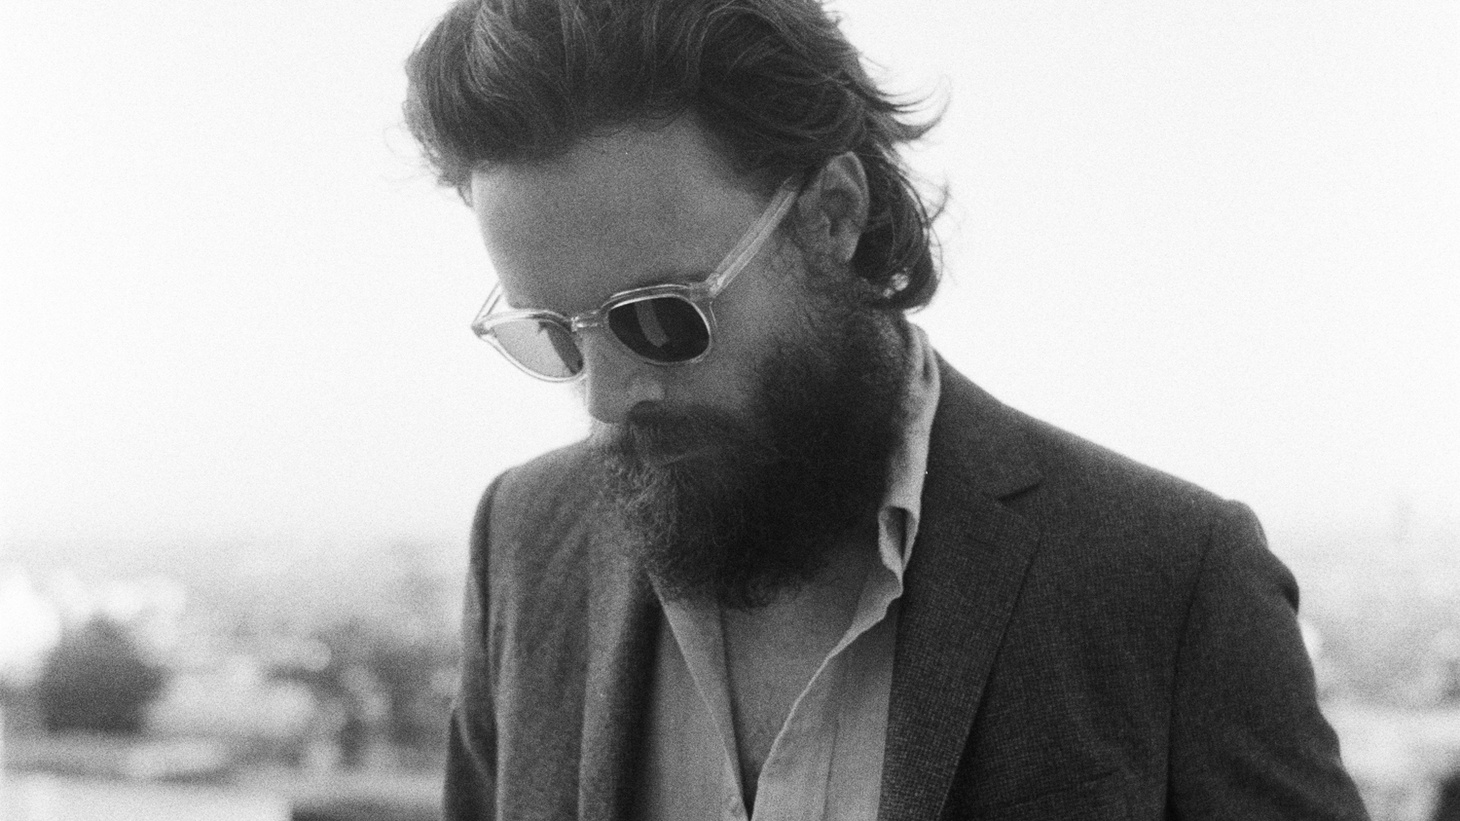 Last year, Father John Misty put out I Love You, Honeybear, an album that found its way onto many Top 10 lists.